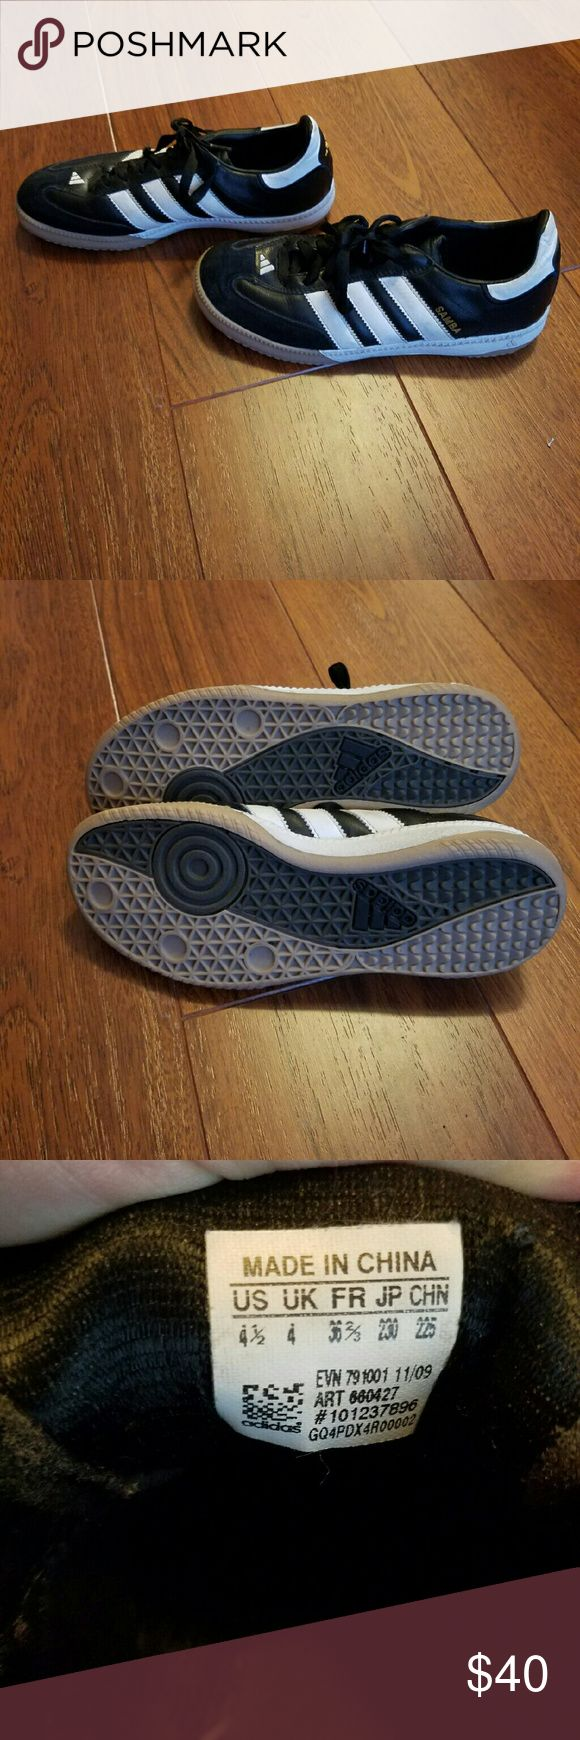 Adidas turf soccer shoes Never worn! Turf shoe size is 4.5 but fits a size US 6.5 foot Adidas Shoes Athletic Shoes